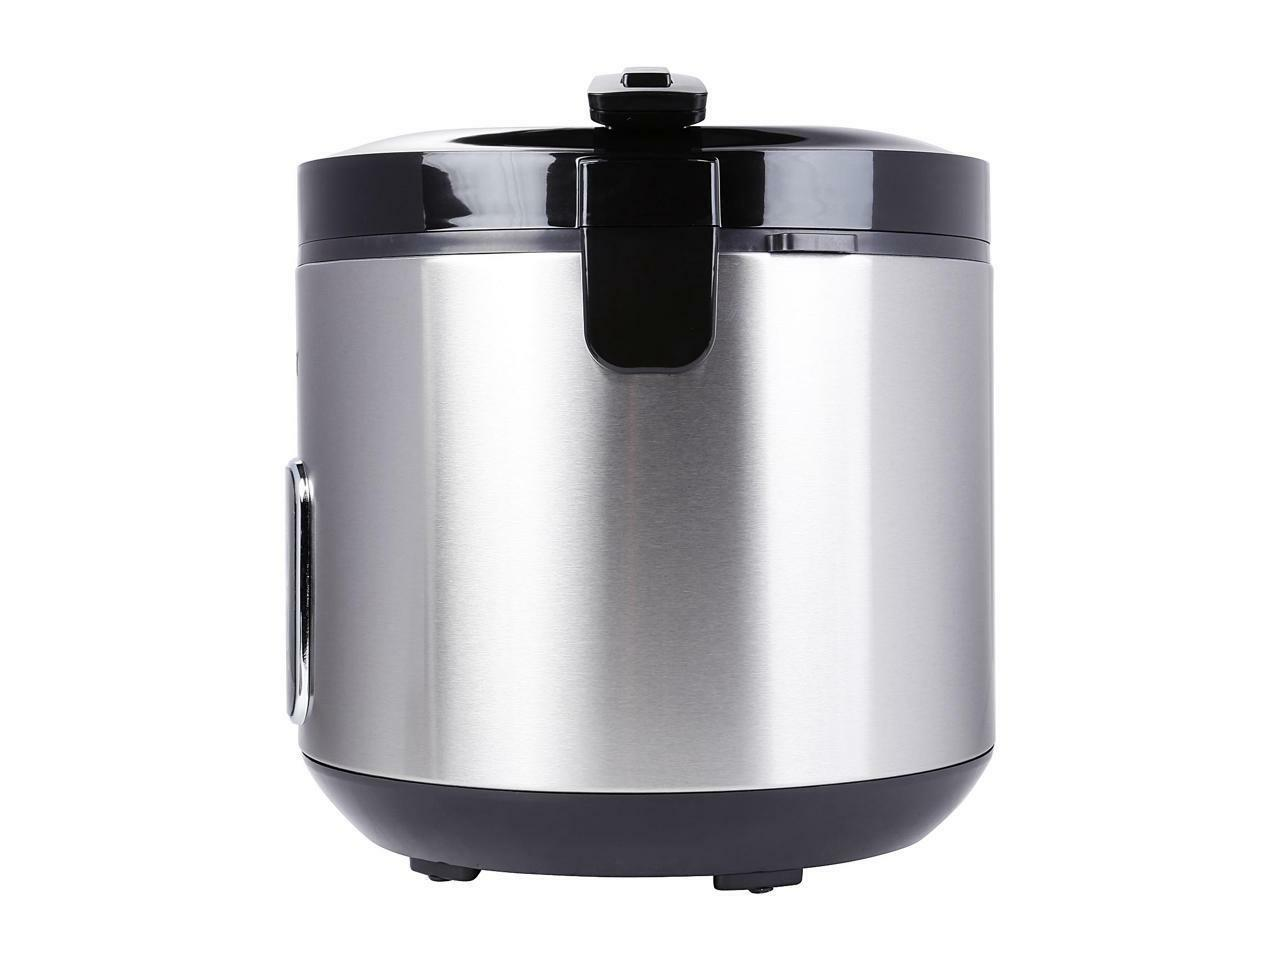 **OPEN BOX**Tayama Cooker Food Steamer 10 Cup in Black